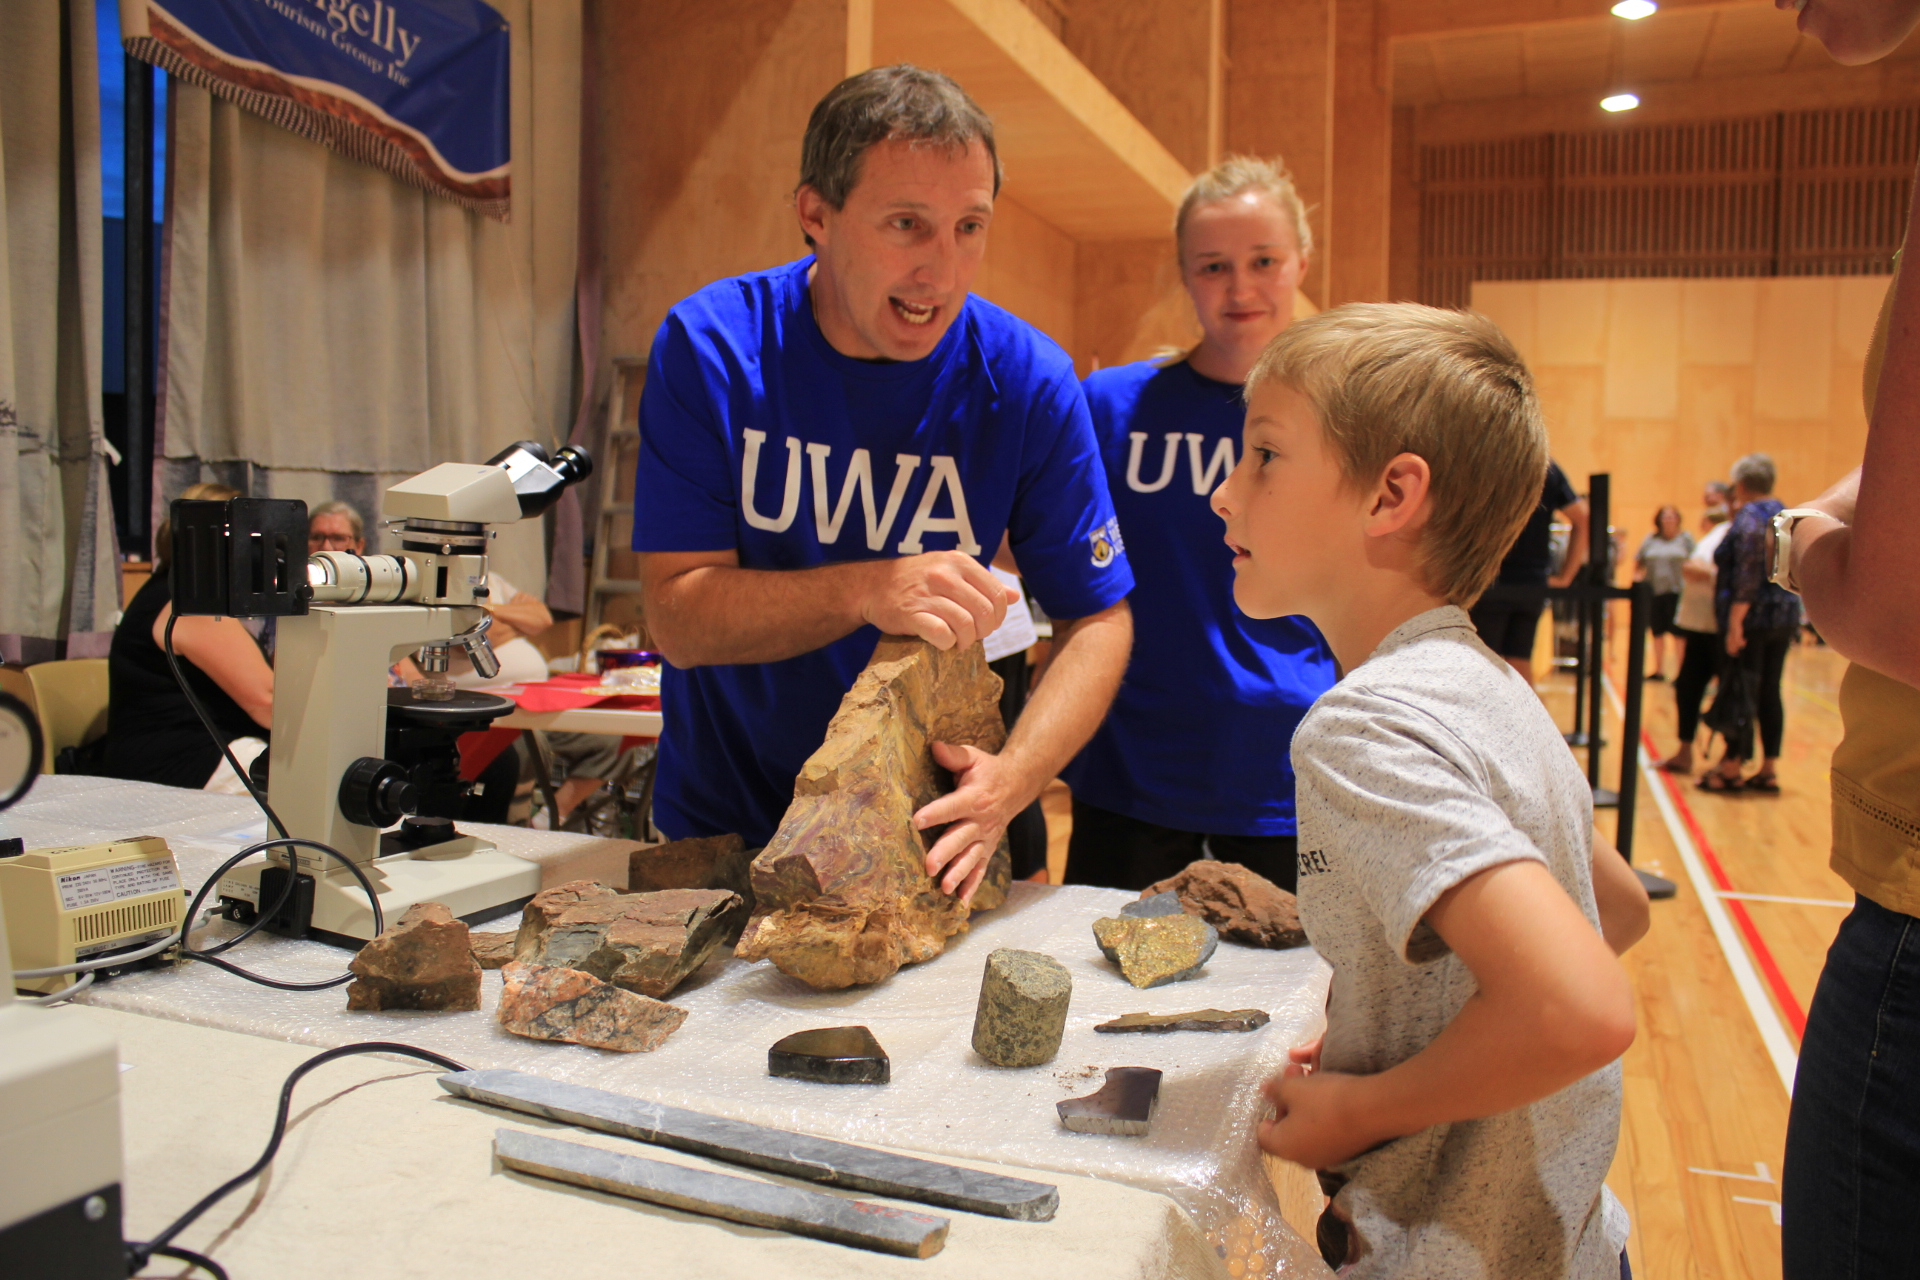 The UWA School of Agriculture and Environment attracted many visitors.